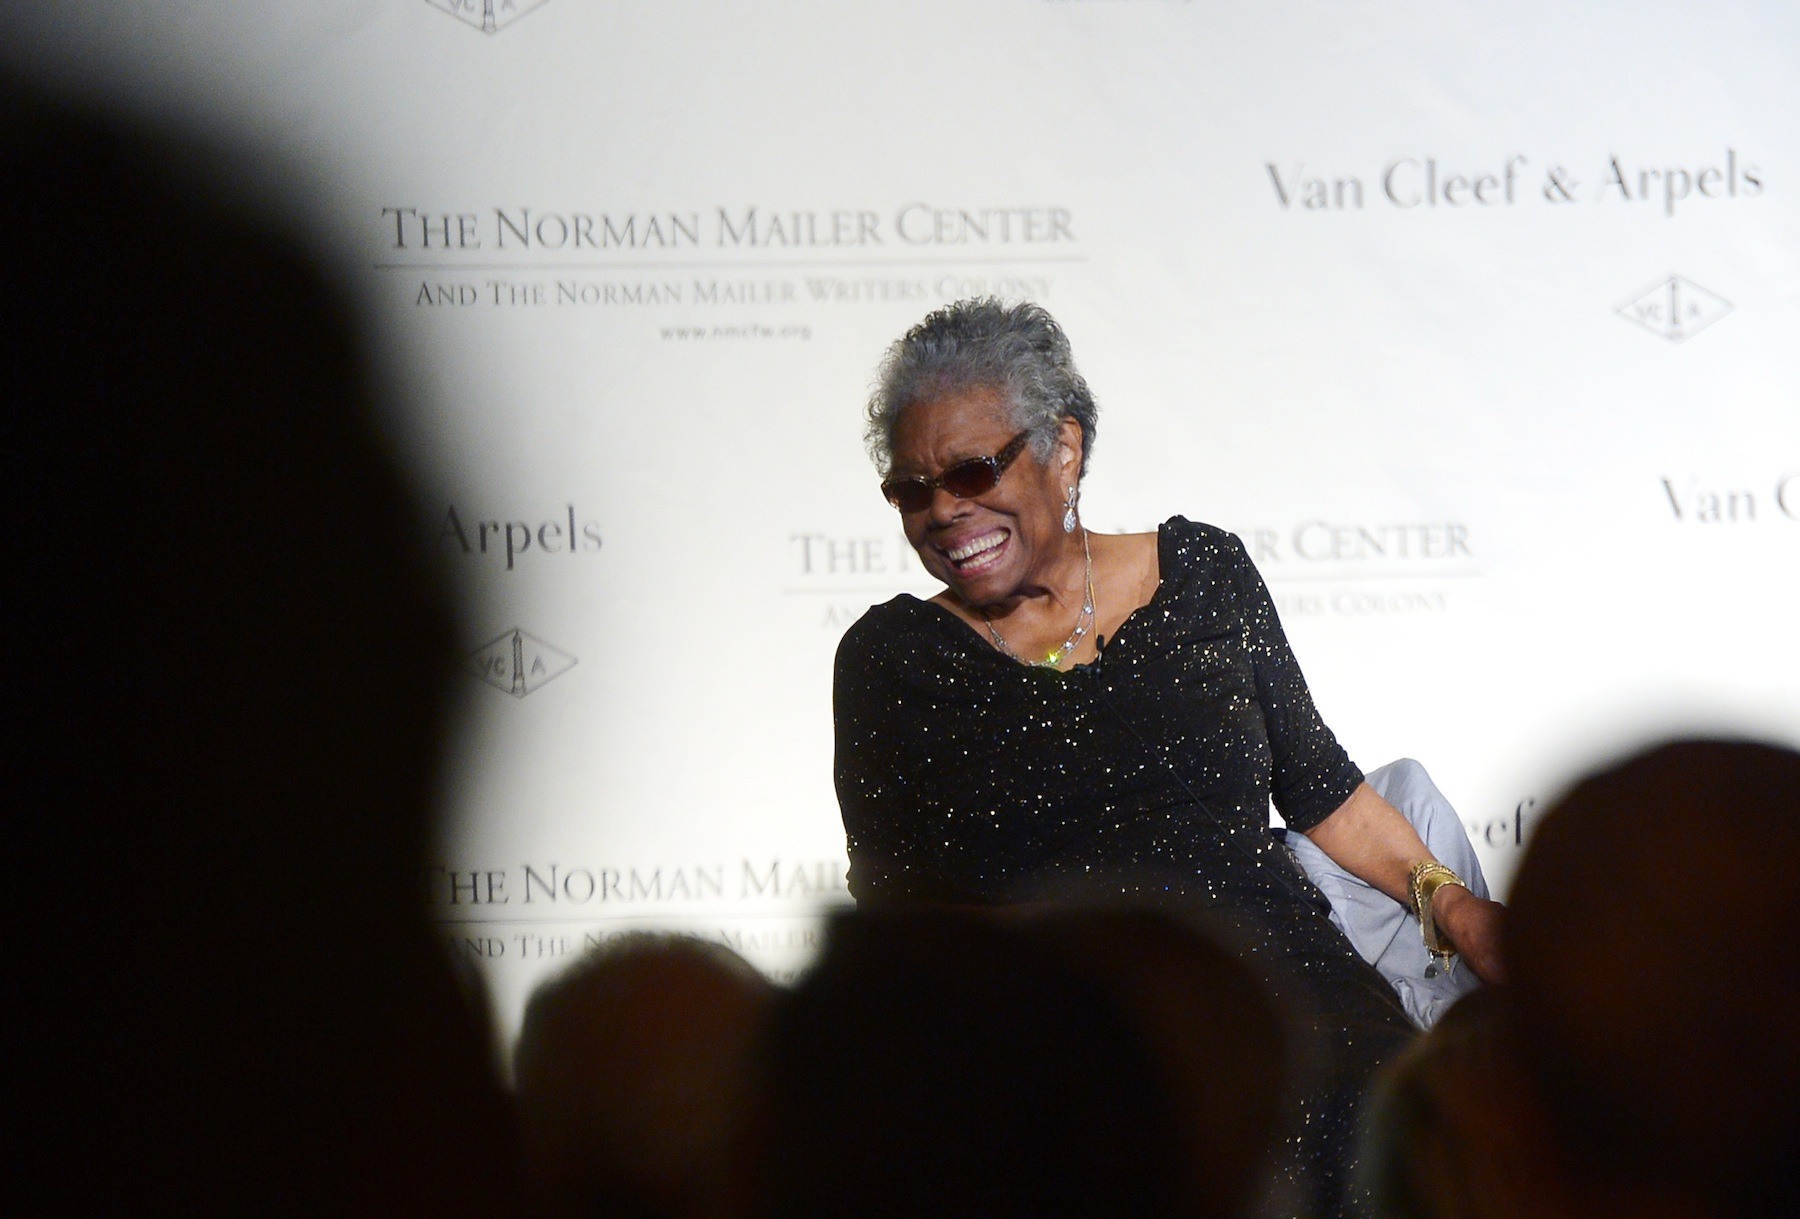 Maya Angelou attends the Norman Mailer Center's fifth annual benefit gala at the New York Public Library on Oct. 17, 2013, in New York City.